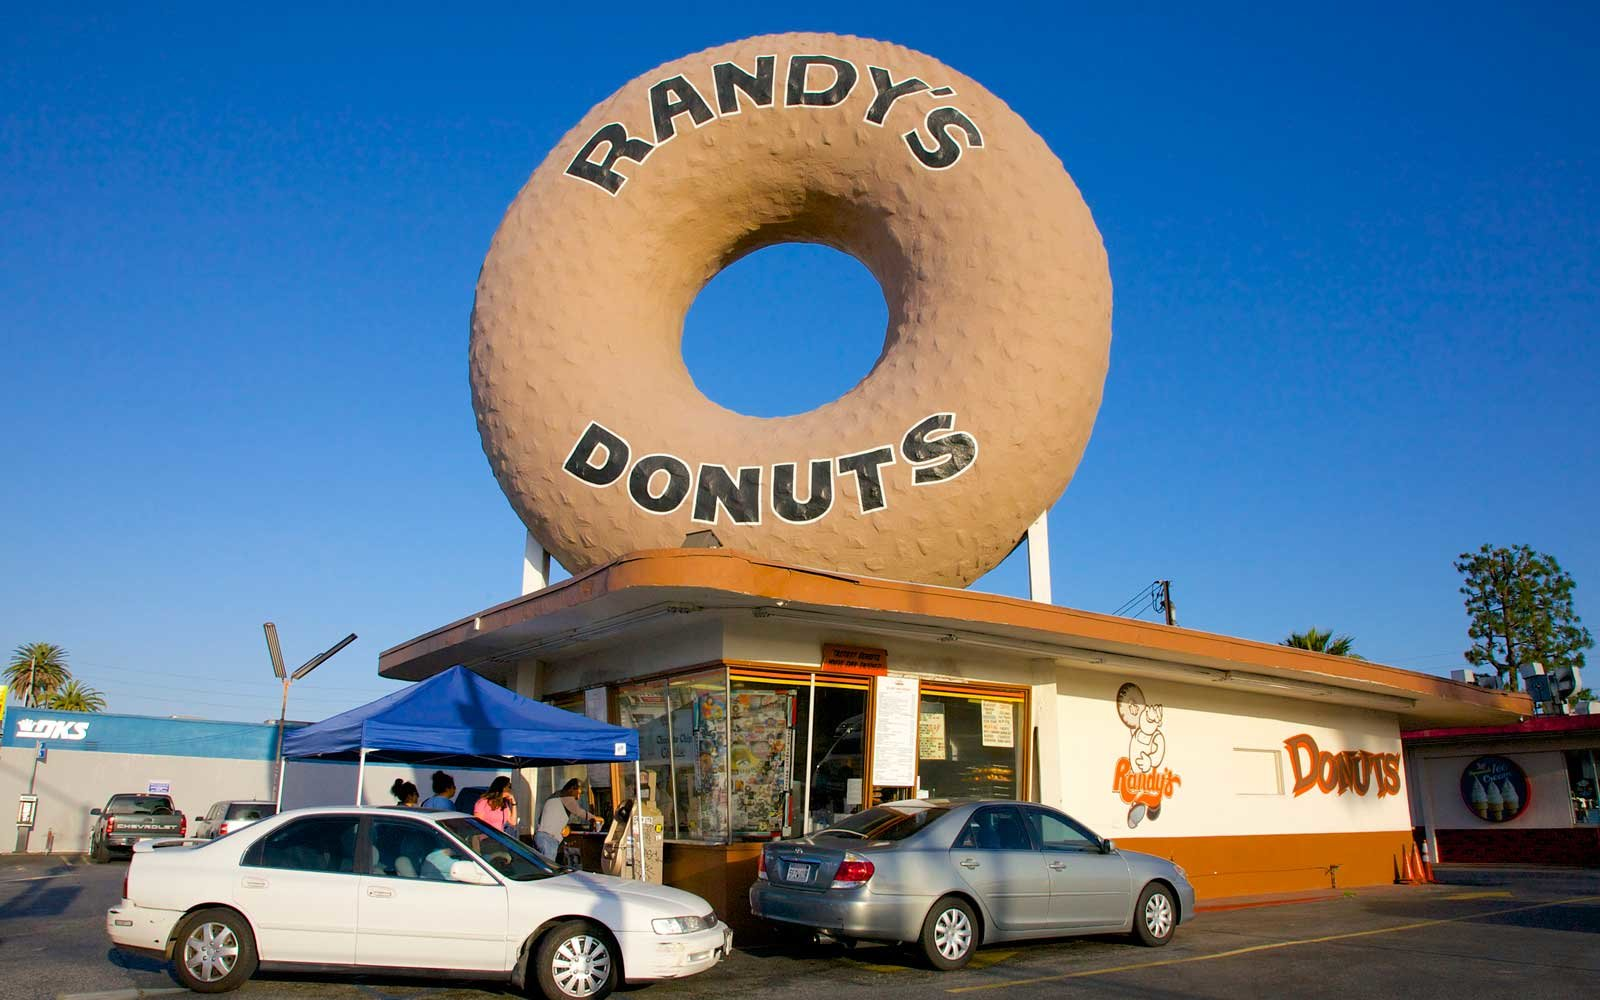 Randy's Donuts, Inglewood, Southern California, USA.  Built in 1953, massive pastry is 32-feet high.